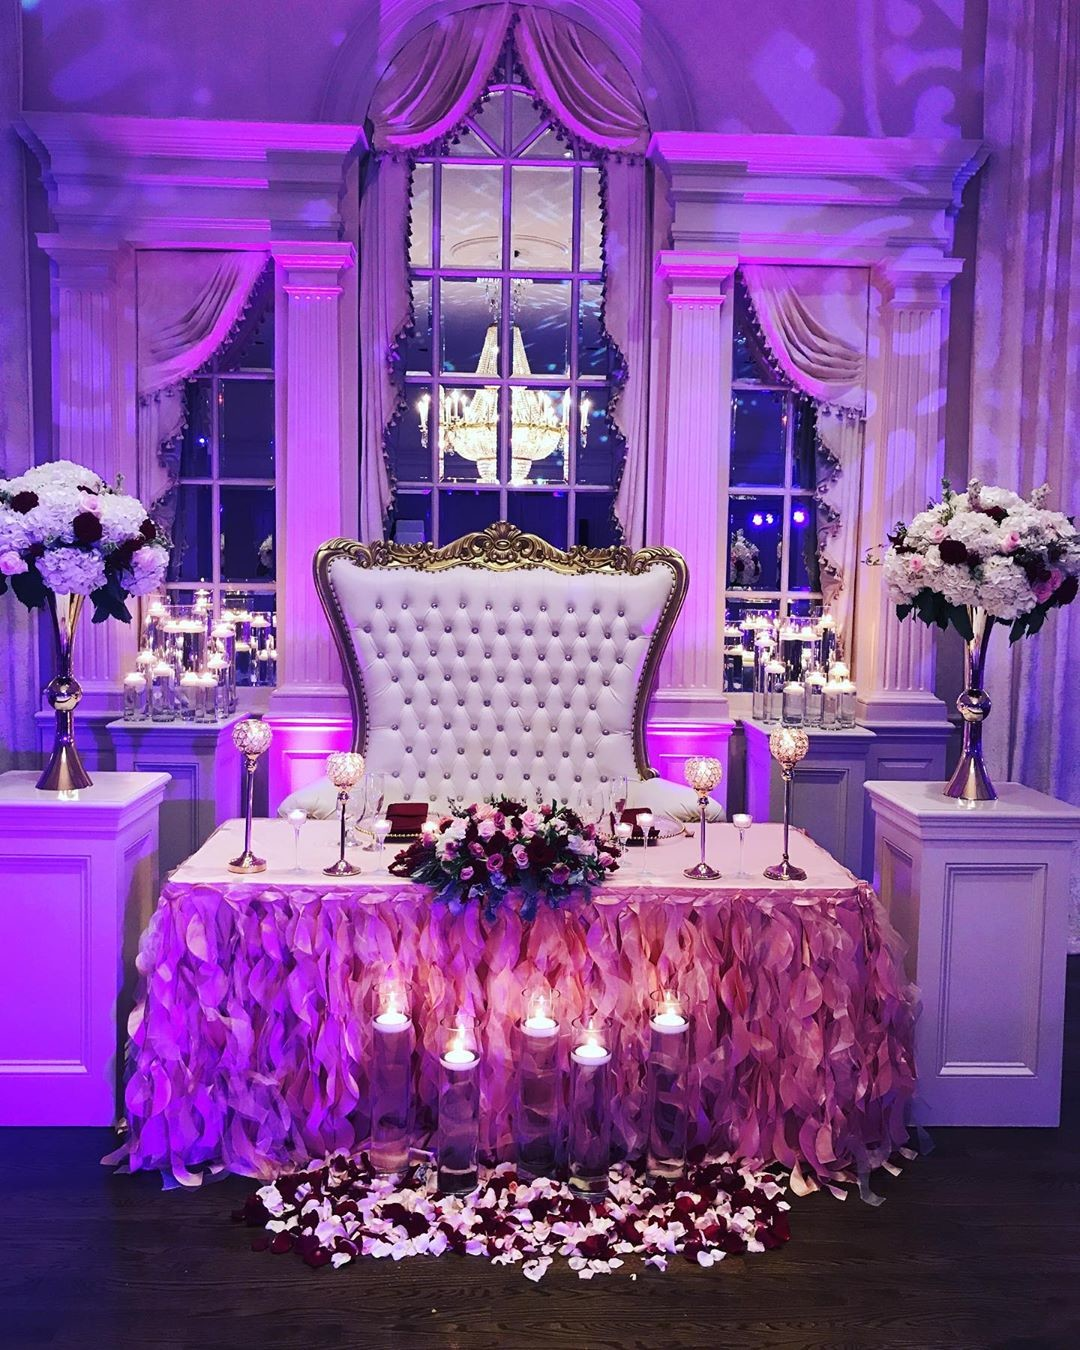 The best sweetheart table set up ❤️❤️💐💐💐